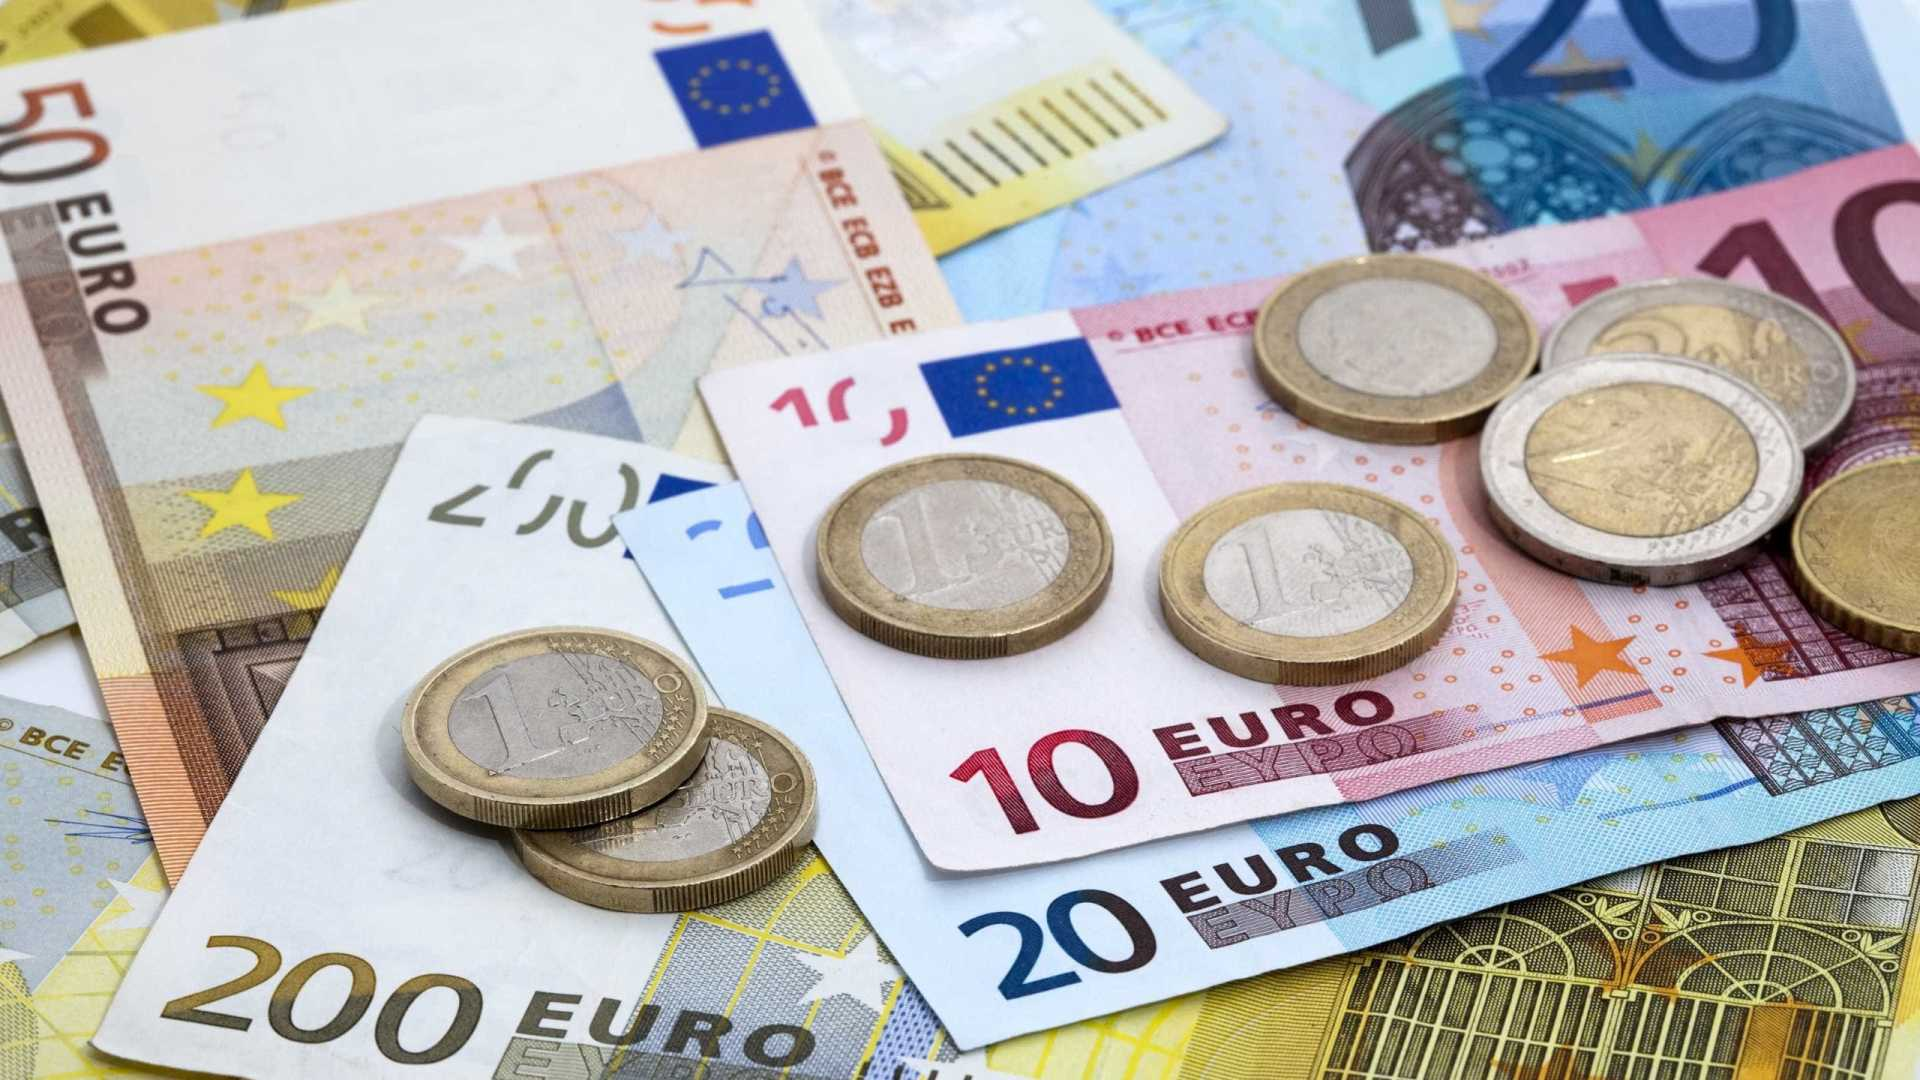 free photo euro currency crisis euros free download jooinn